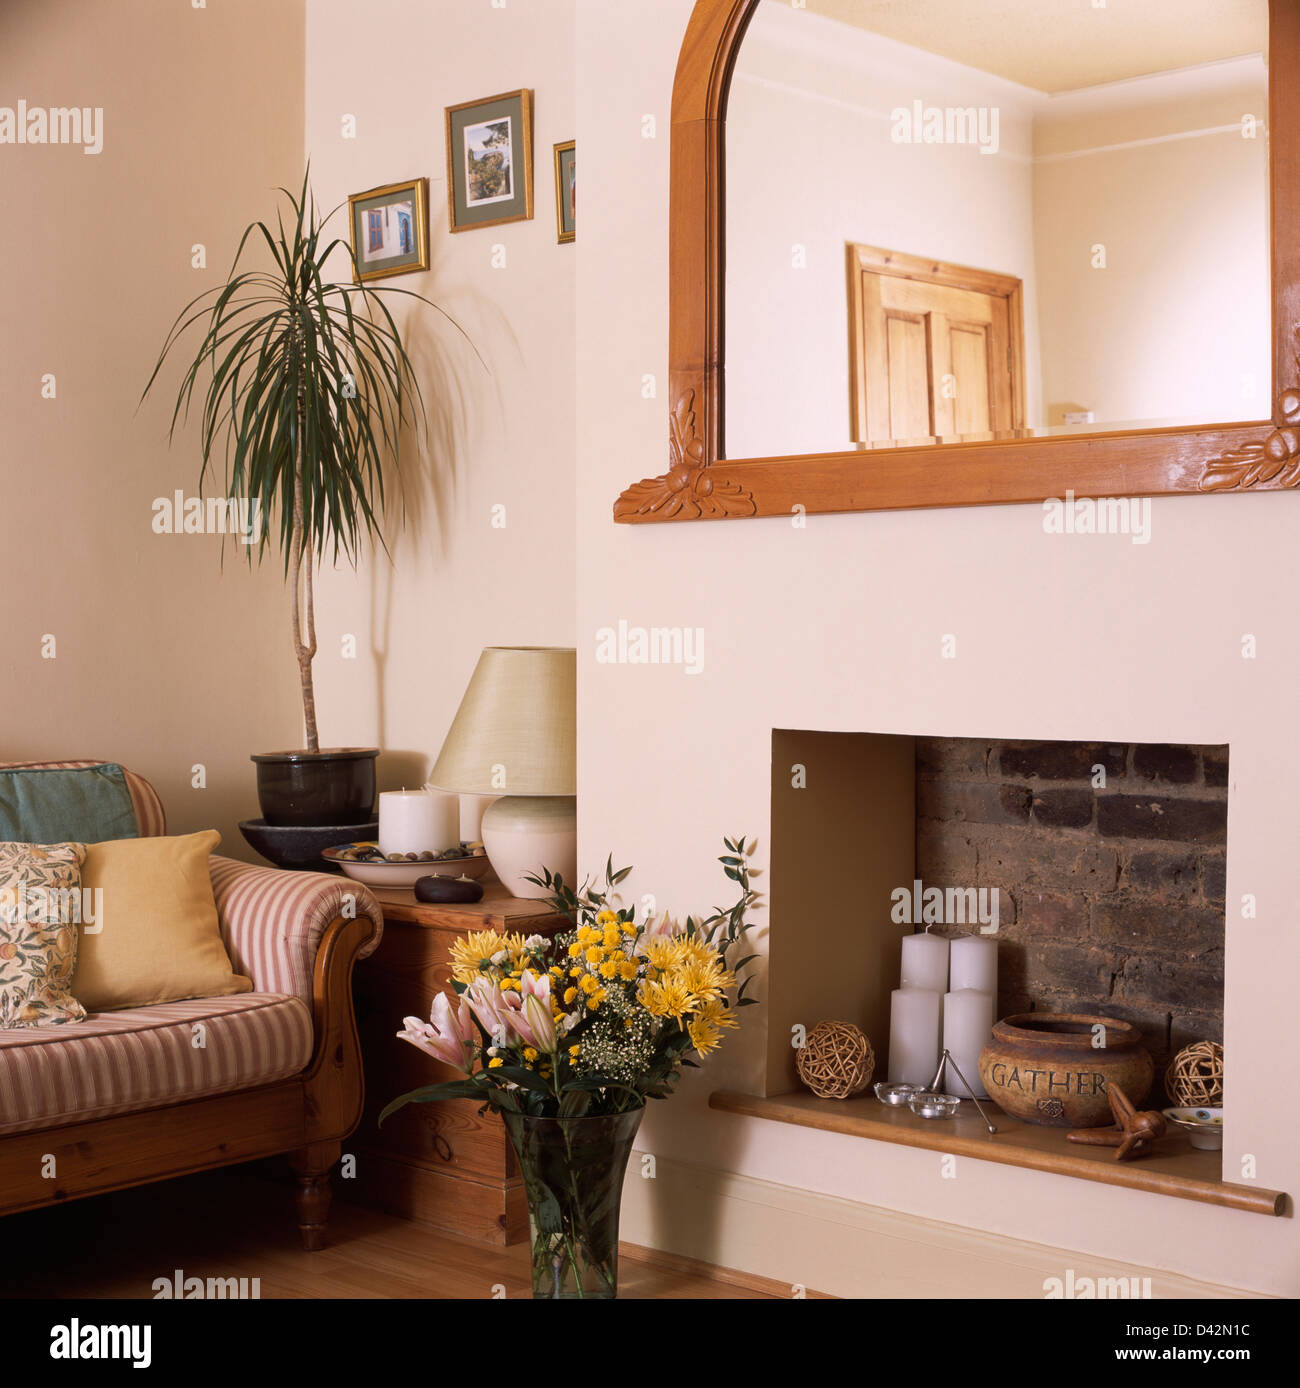 Mirror above simple fireplace alcove with candles in economy style ...